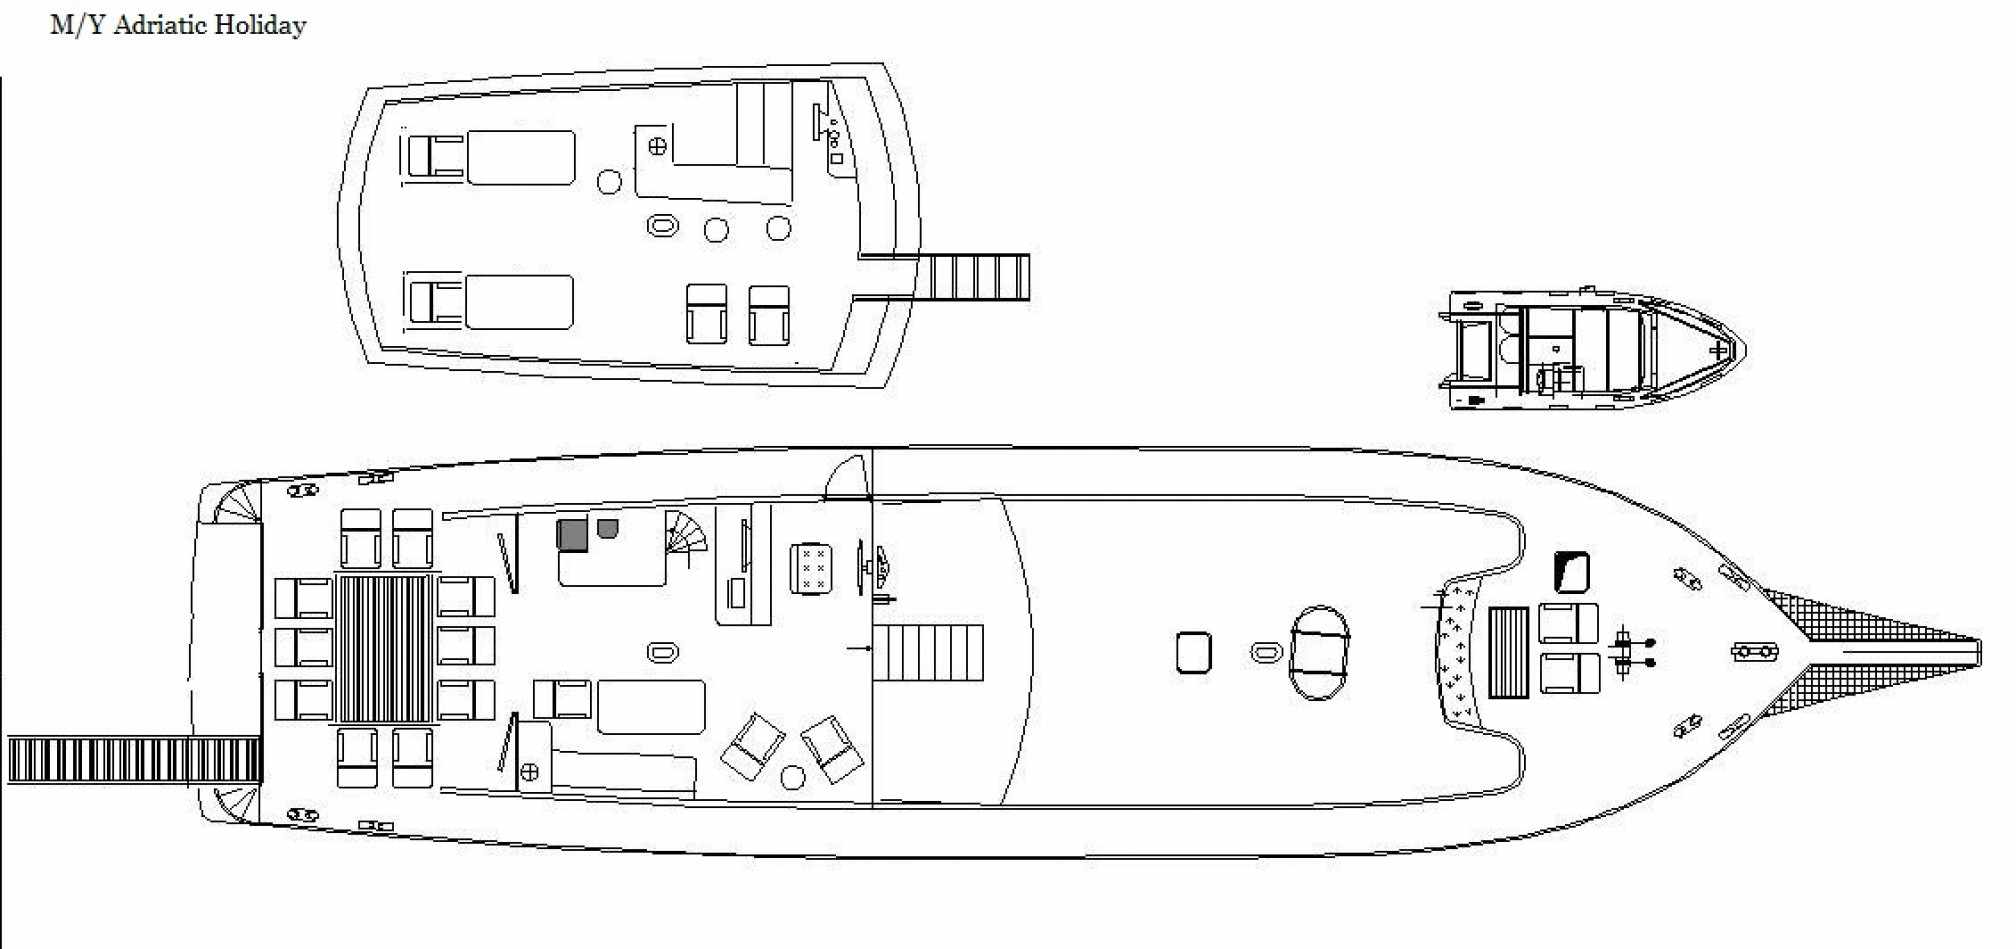 Adriatic Holiday gulet charter layout